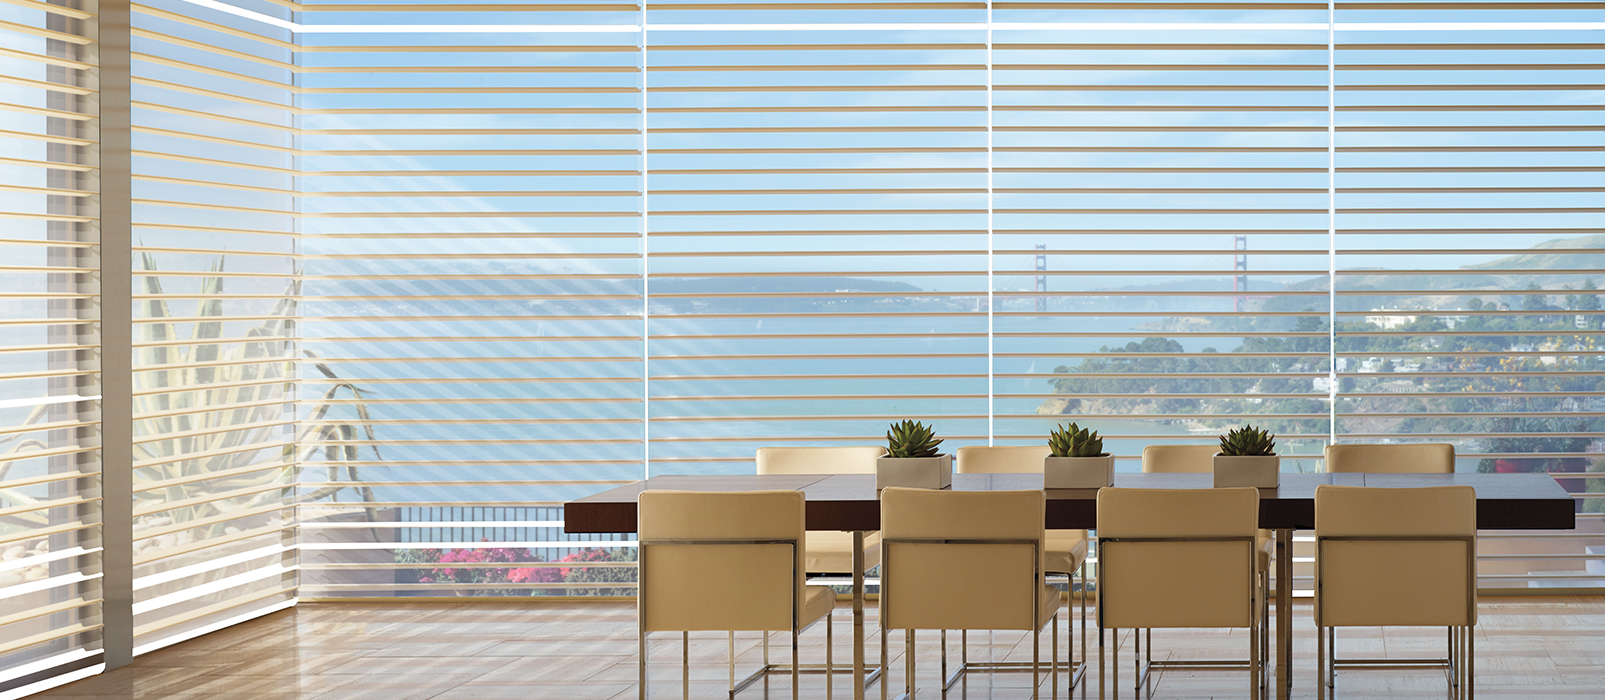 Basement Blinds Window Blinds In Hammonton Nj Window Treatments Blinds Shades